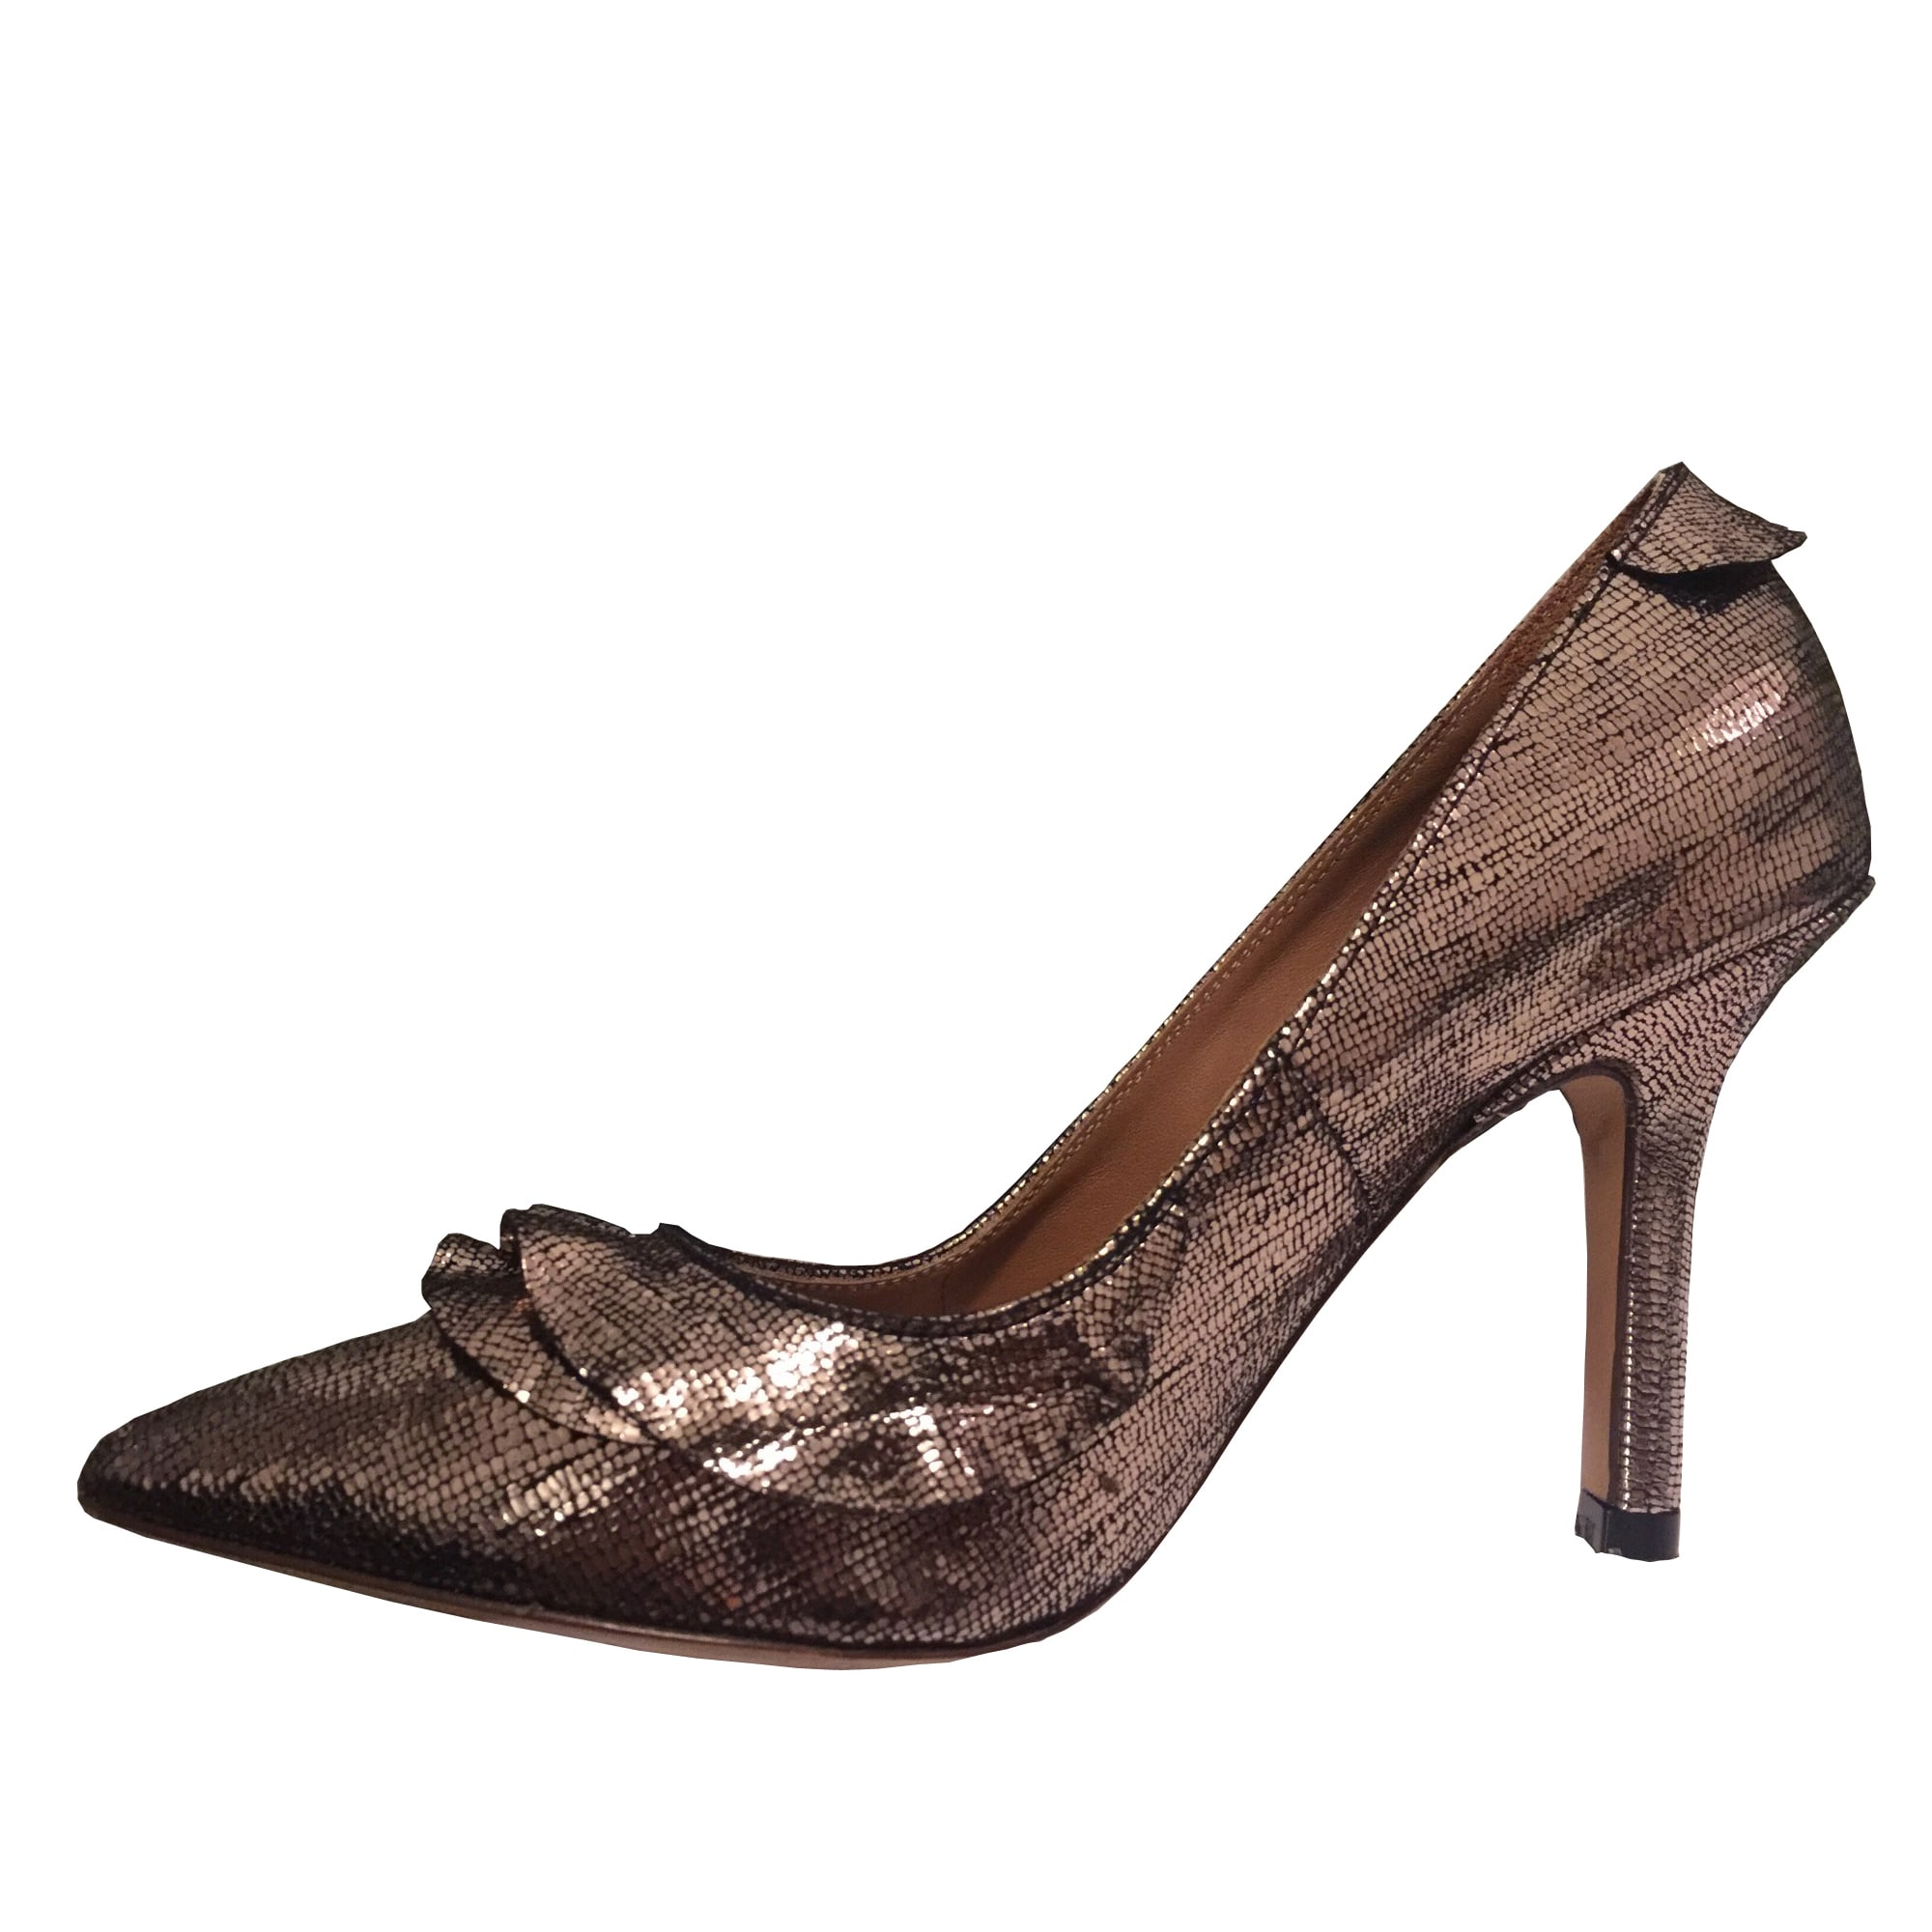 Pumps, Heels JEROME DREYFUSS Silver